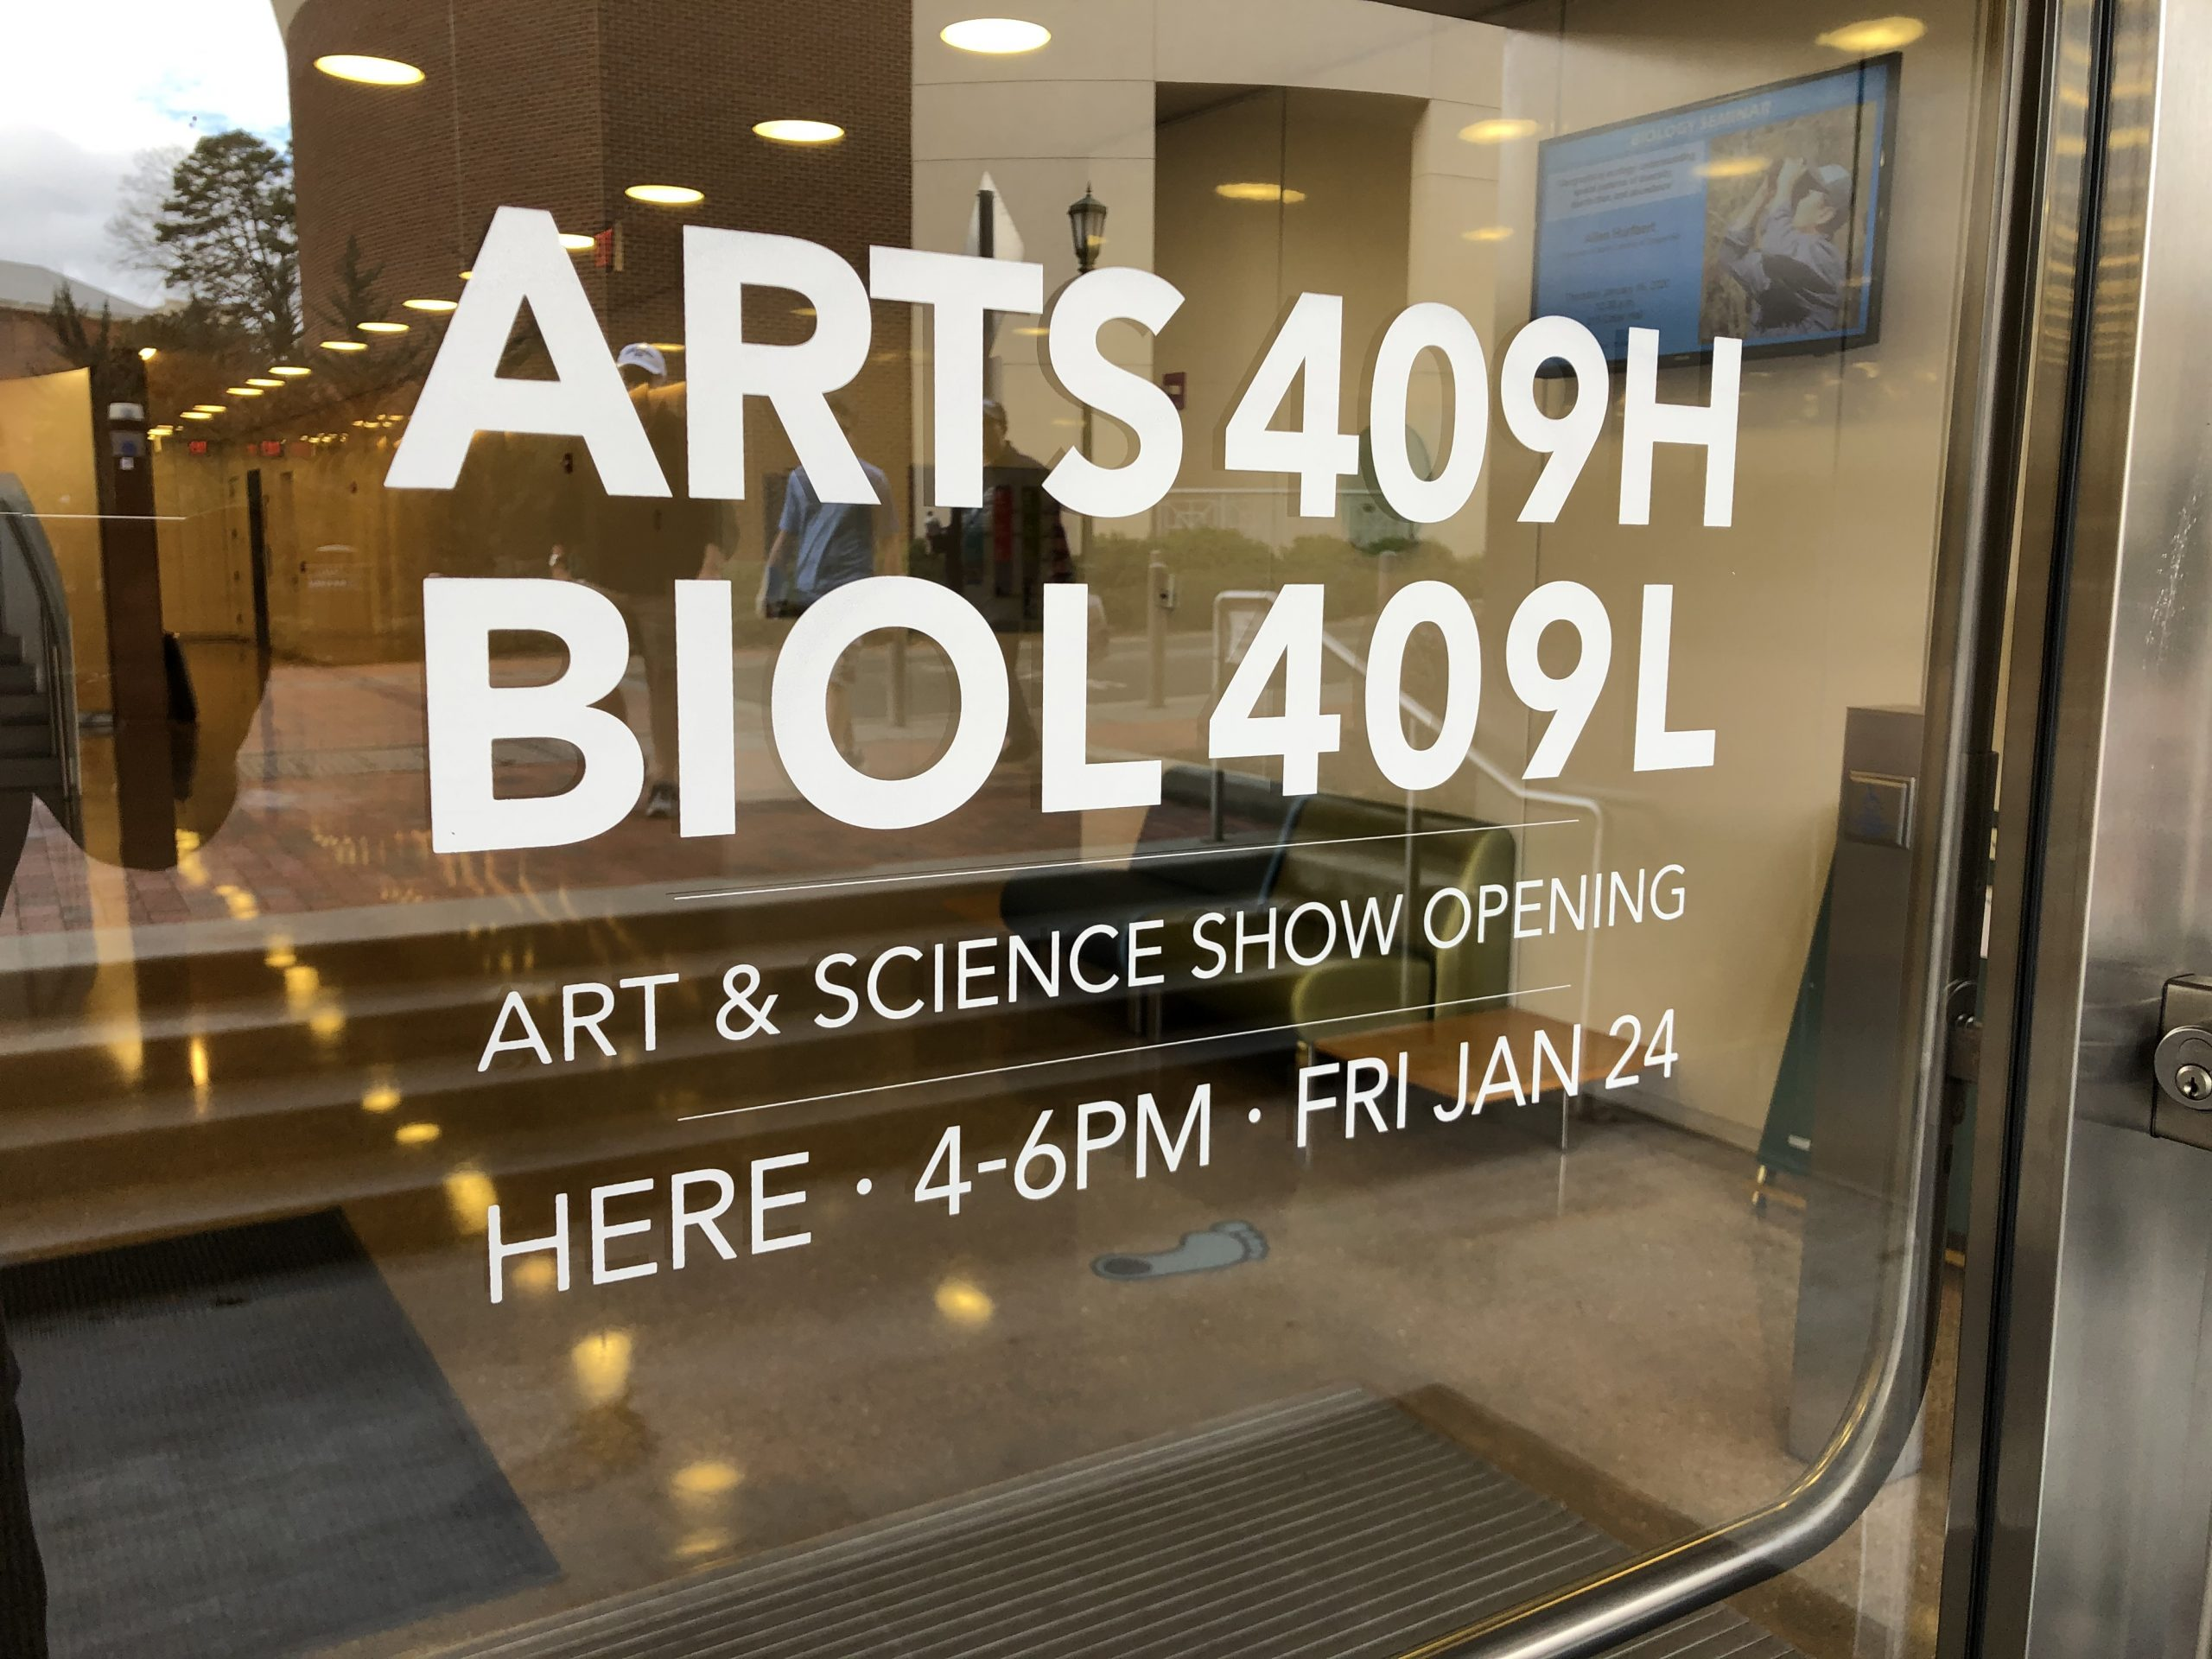 Poster graphic for ARTS 409H/BIOL 409L Art and Science Show